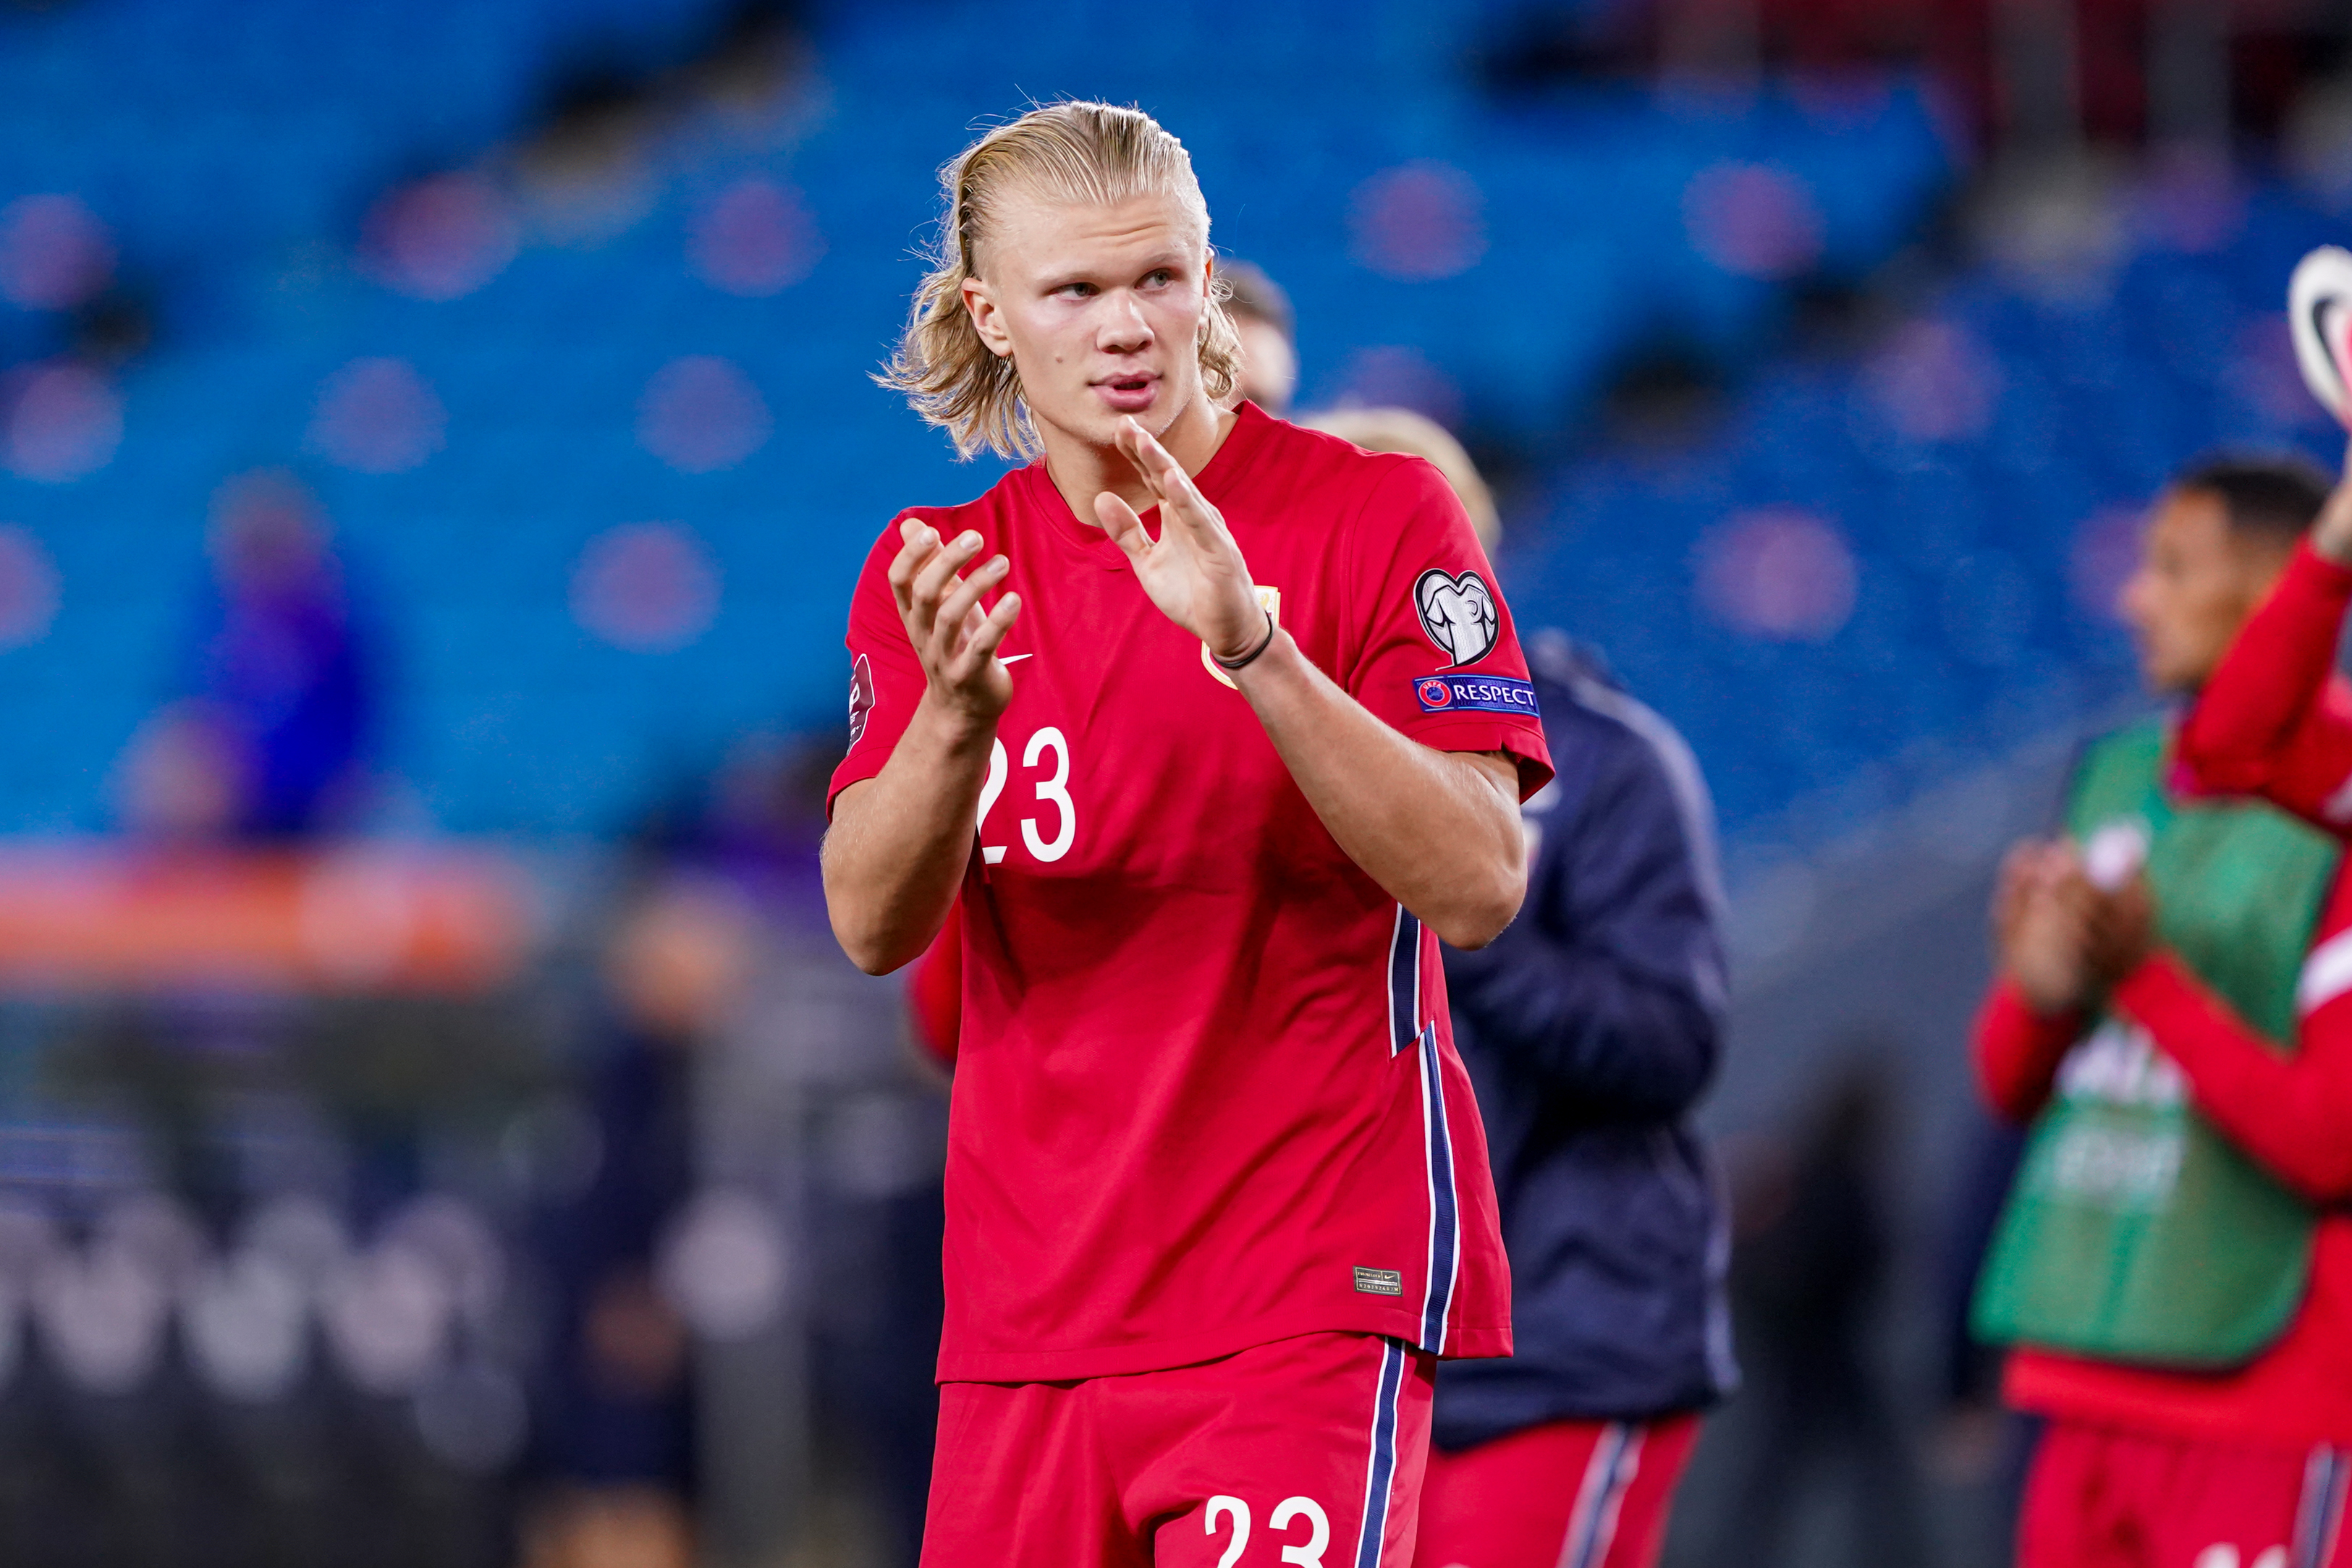 Norway v Netherlands - 2022 FIFA World Cup Qualifier